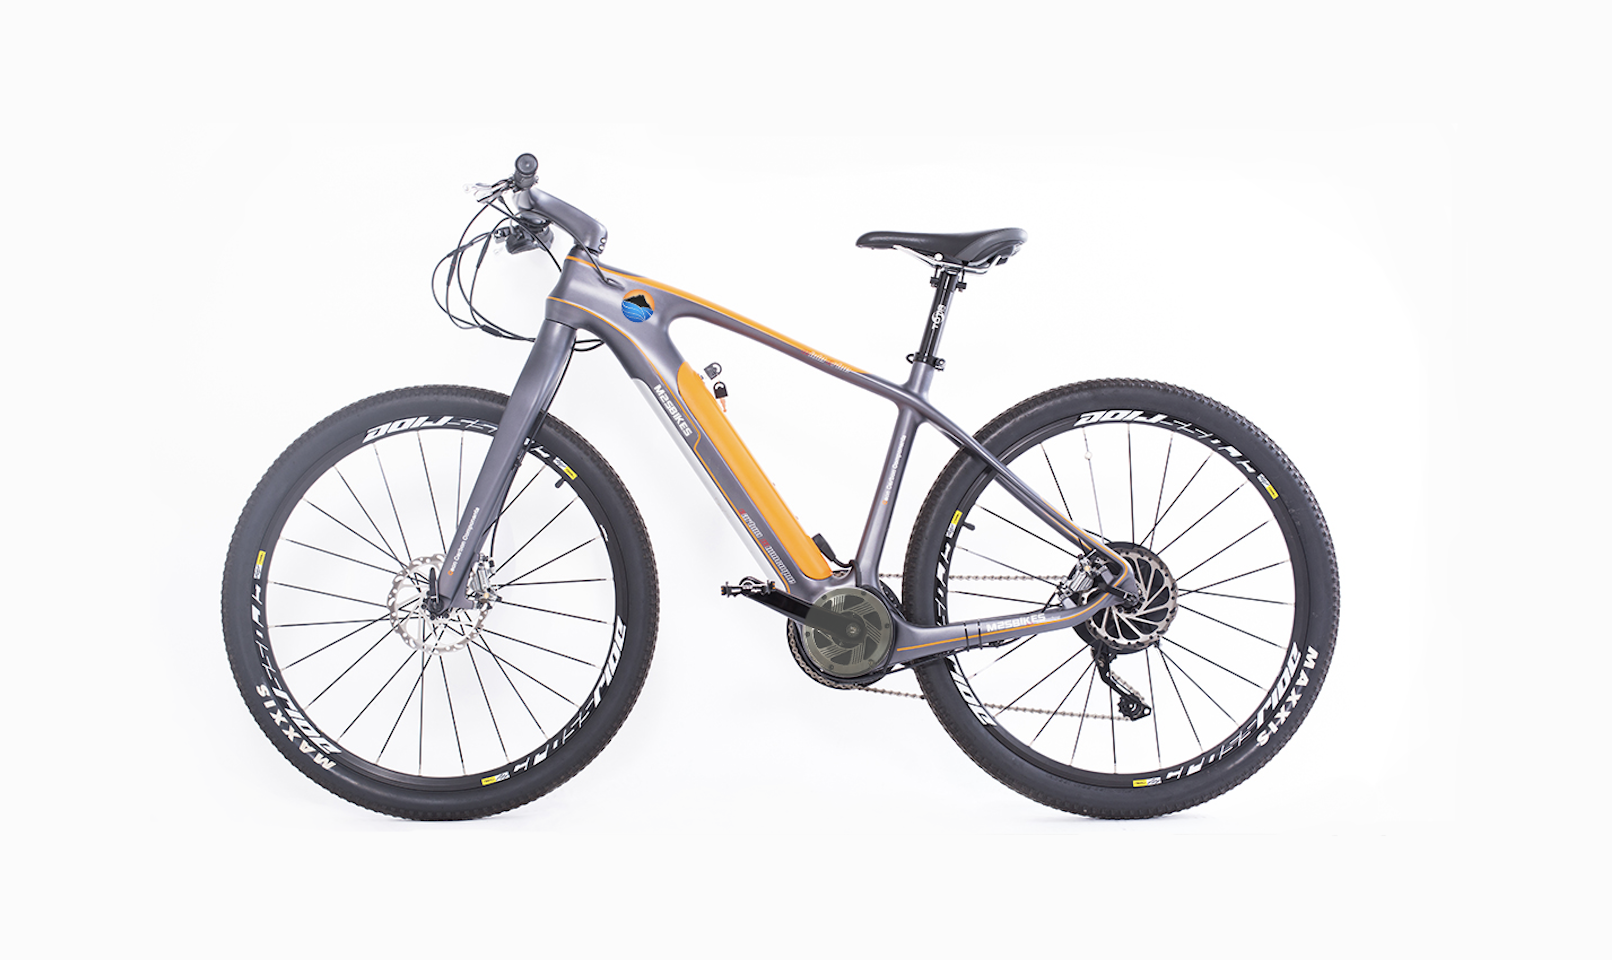 m2s bikes introduces the all